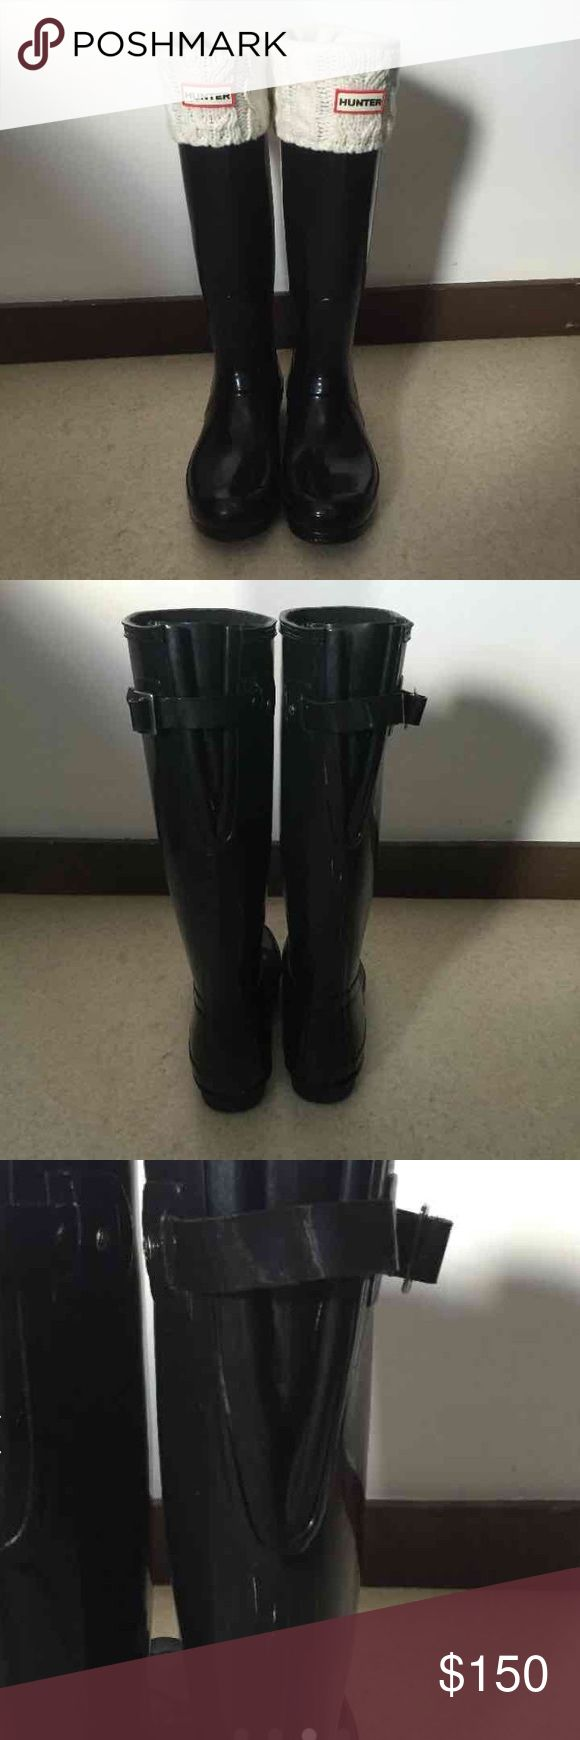 Wide Calf Hunter Boots Socks & Cleaner Tall Black Glossy Hunter Boots  Great condition, worn a few times and decided I don't like how they look on me One scuff on back, can probably be covered Adjustable buckles  Cream colored Hunter boot socks and Hunter cleaner $110 on merc, bundle and save! Hunter Boots Shoes Winter & Rain Boots